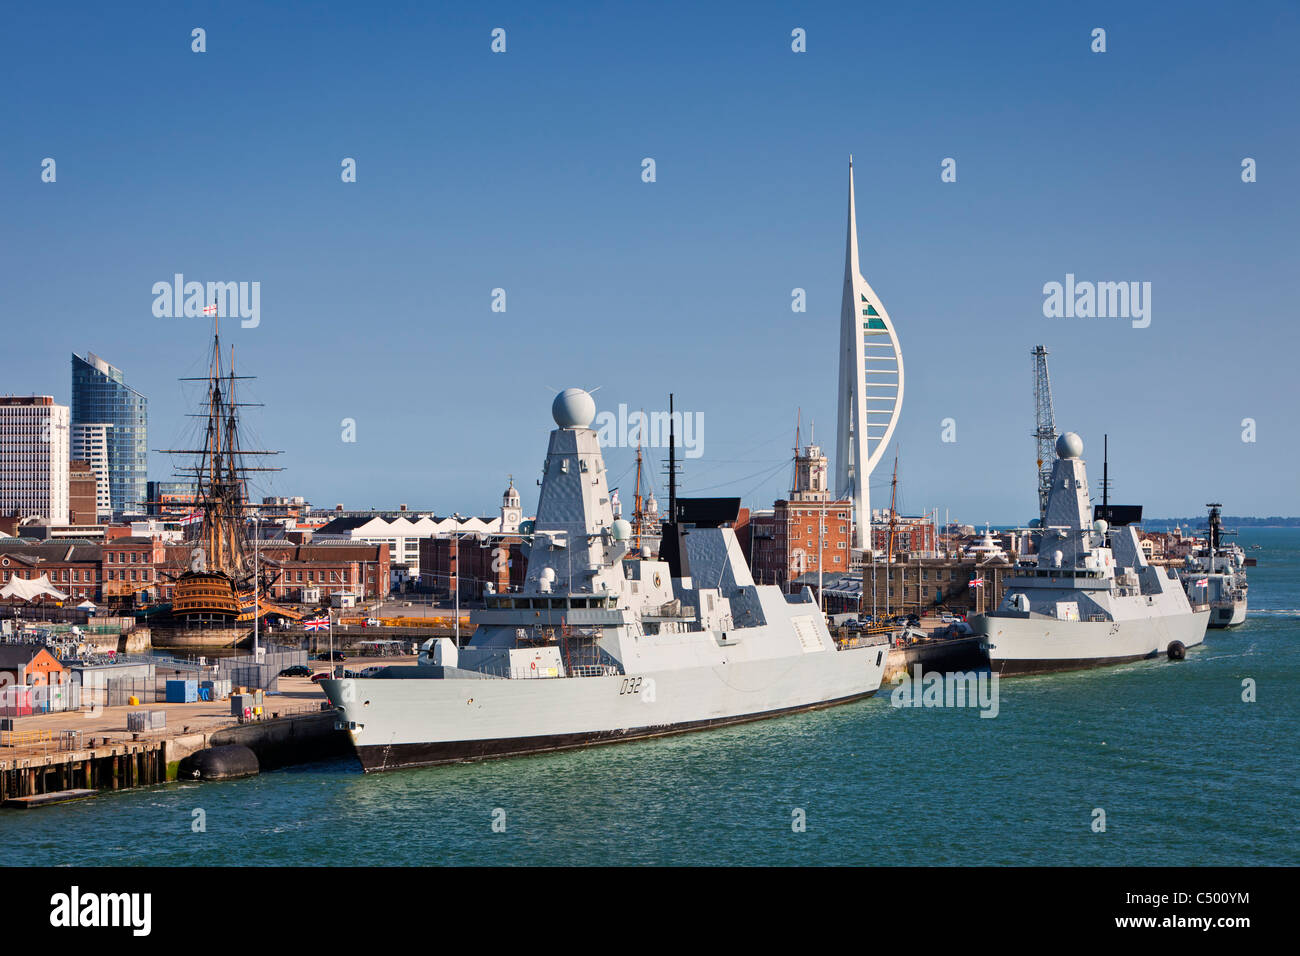 Portsmouth Harbour, England UK, modern and historic Navy warships - Stock Image